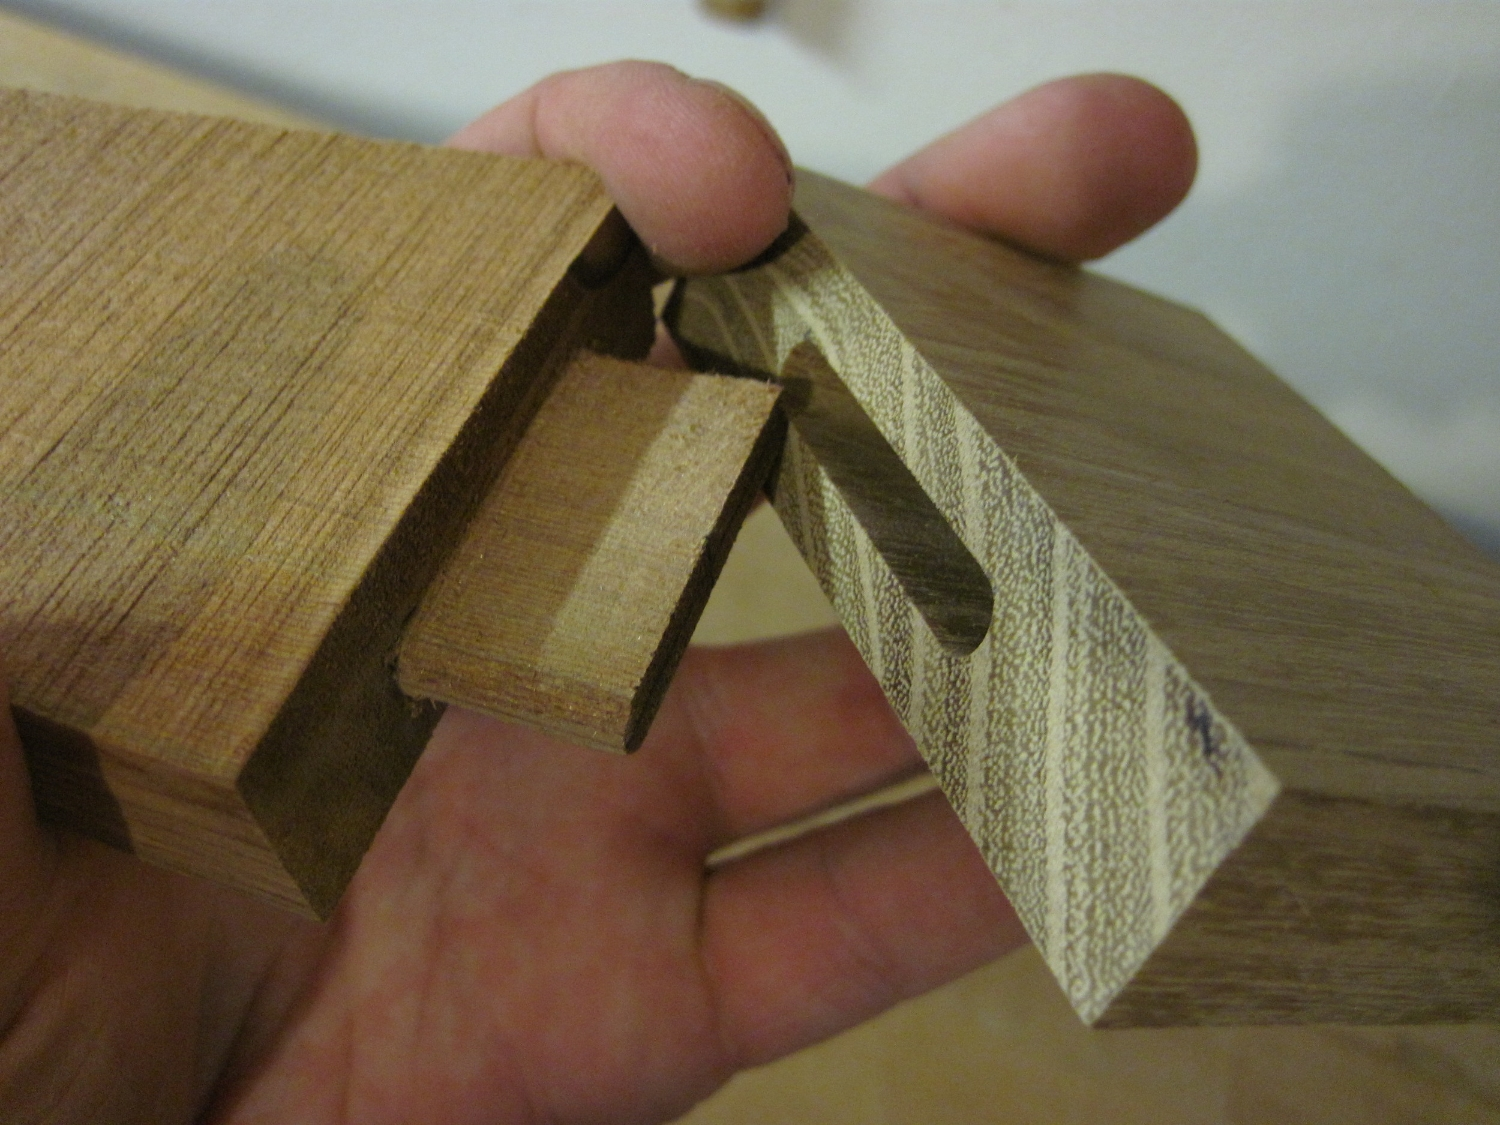 greenland paddle mortise and tenon